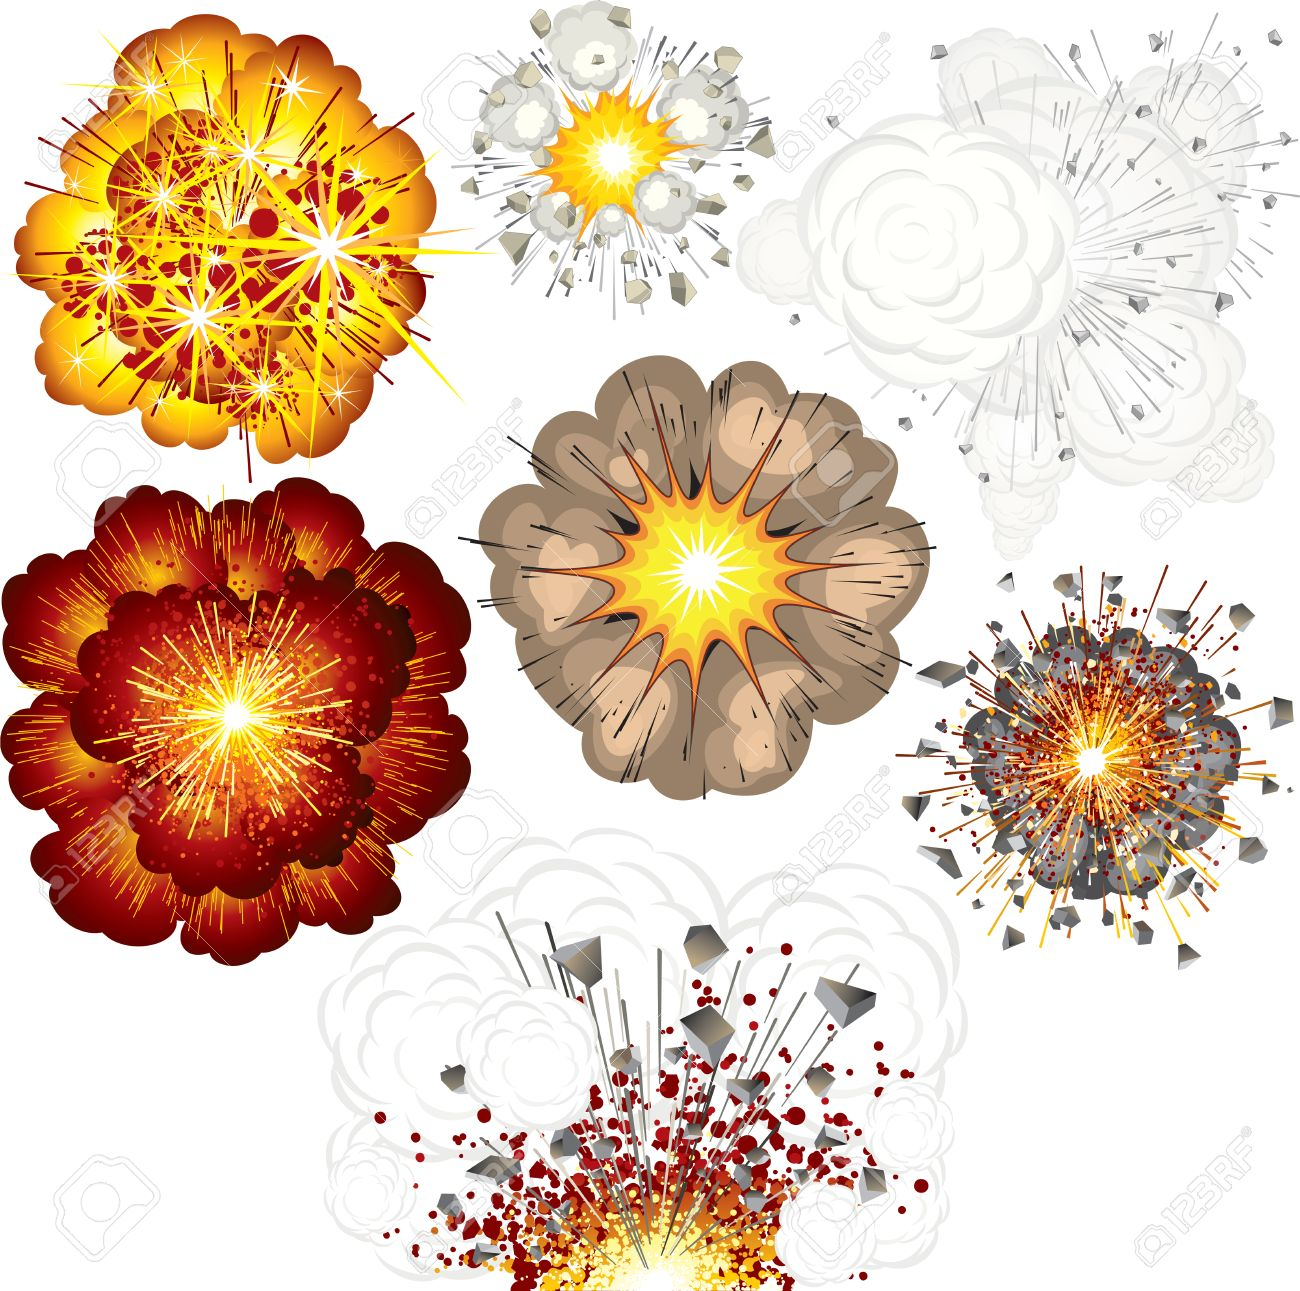 Different explosions-set of  illustrations Stock Vector - 7714455